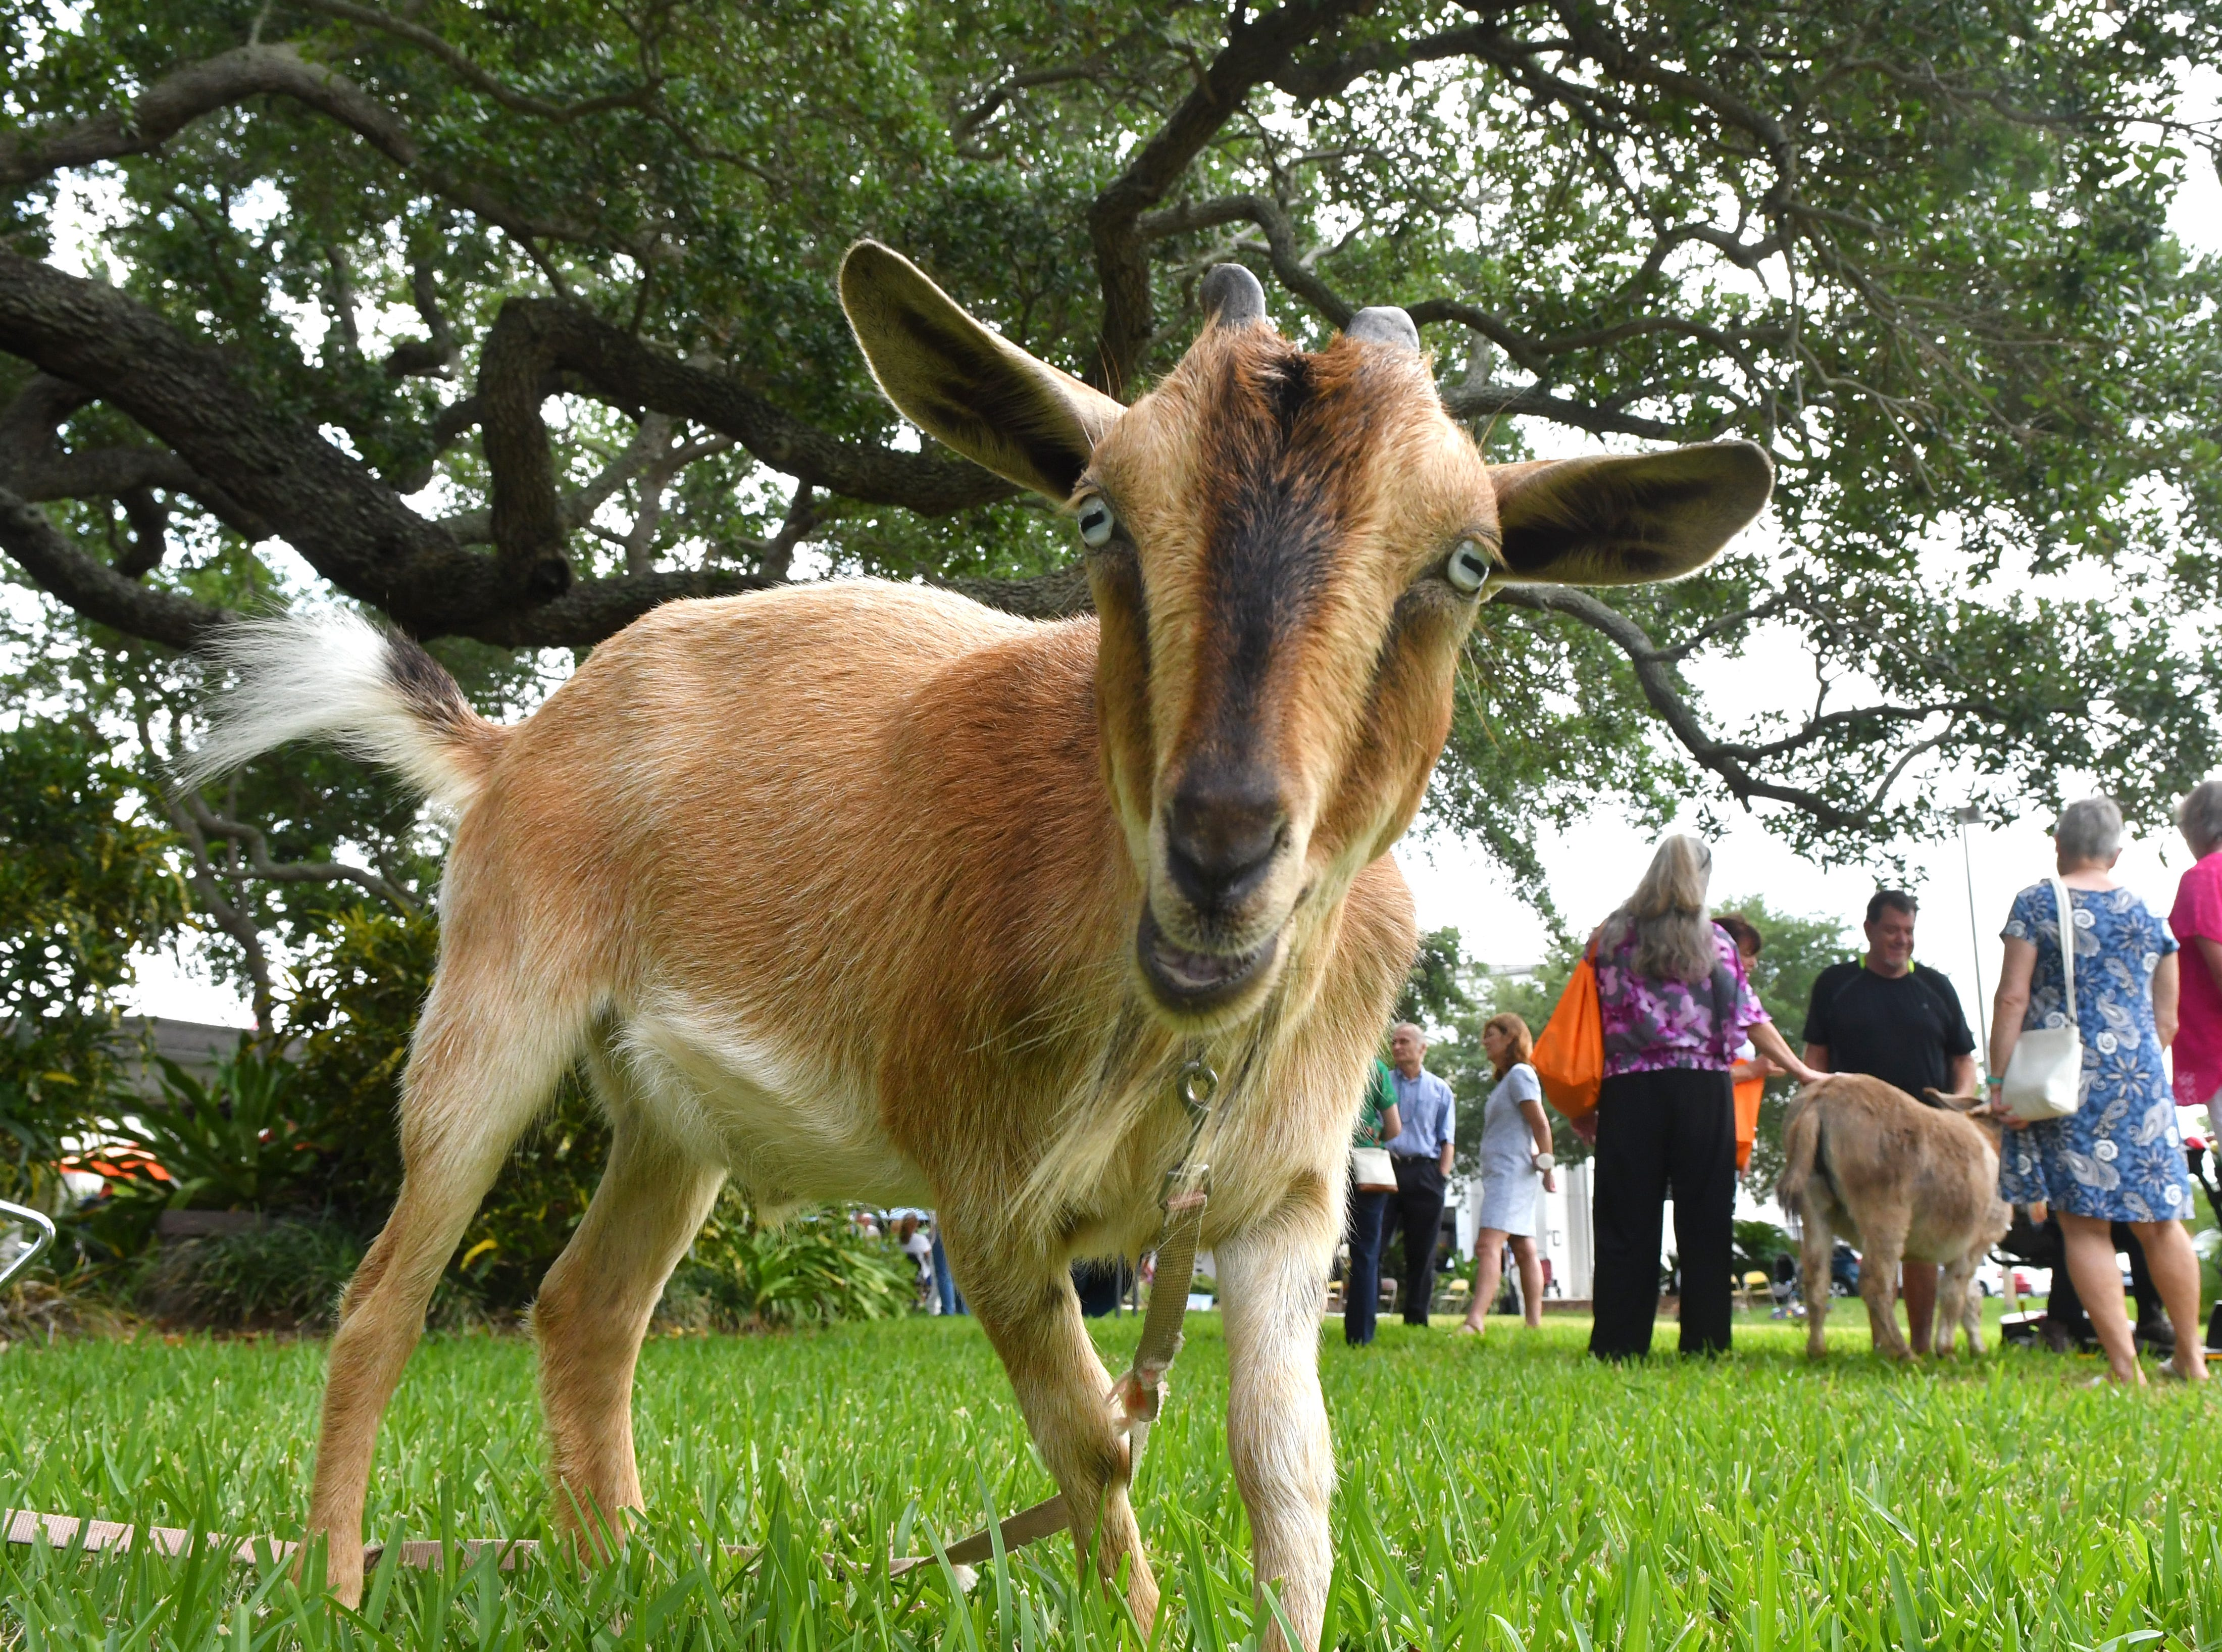 Kendrick the goat was either posing, or sizing up the camera for a possible snack. Eastminster Presbyterian Church held a free Palm Sunday Funday following a traditional morning service. Activities included several animals from Cox Farms, Jazz music by the Ron Teixeira Trio, crafts, food, egg hunts, and  more. This Indialantic church, which is over 75 years old, will hold several series on Easter Sunday.